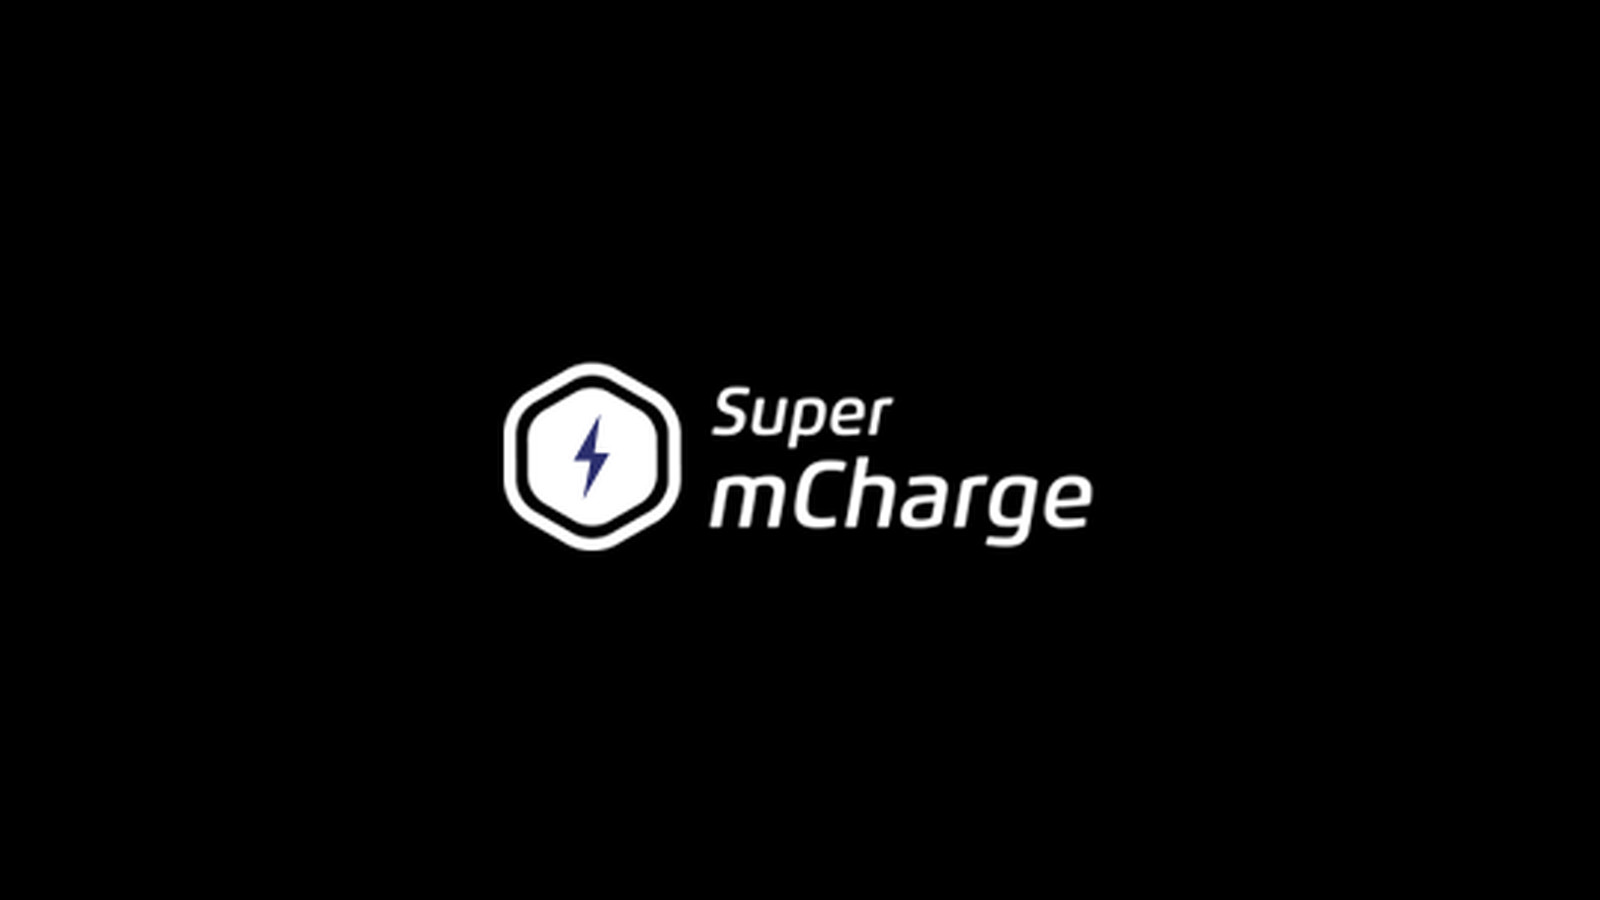 Meizu Claims its New 55W Super MCharge Technology Can Fully Charge a Phone in 20 Minutes